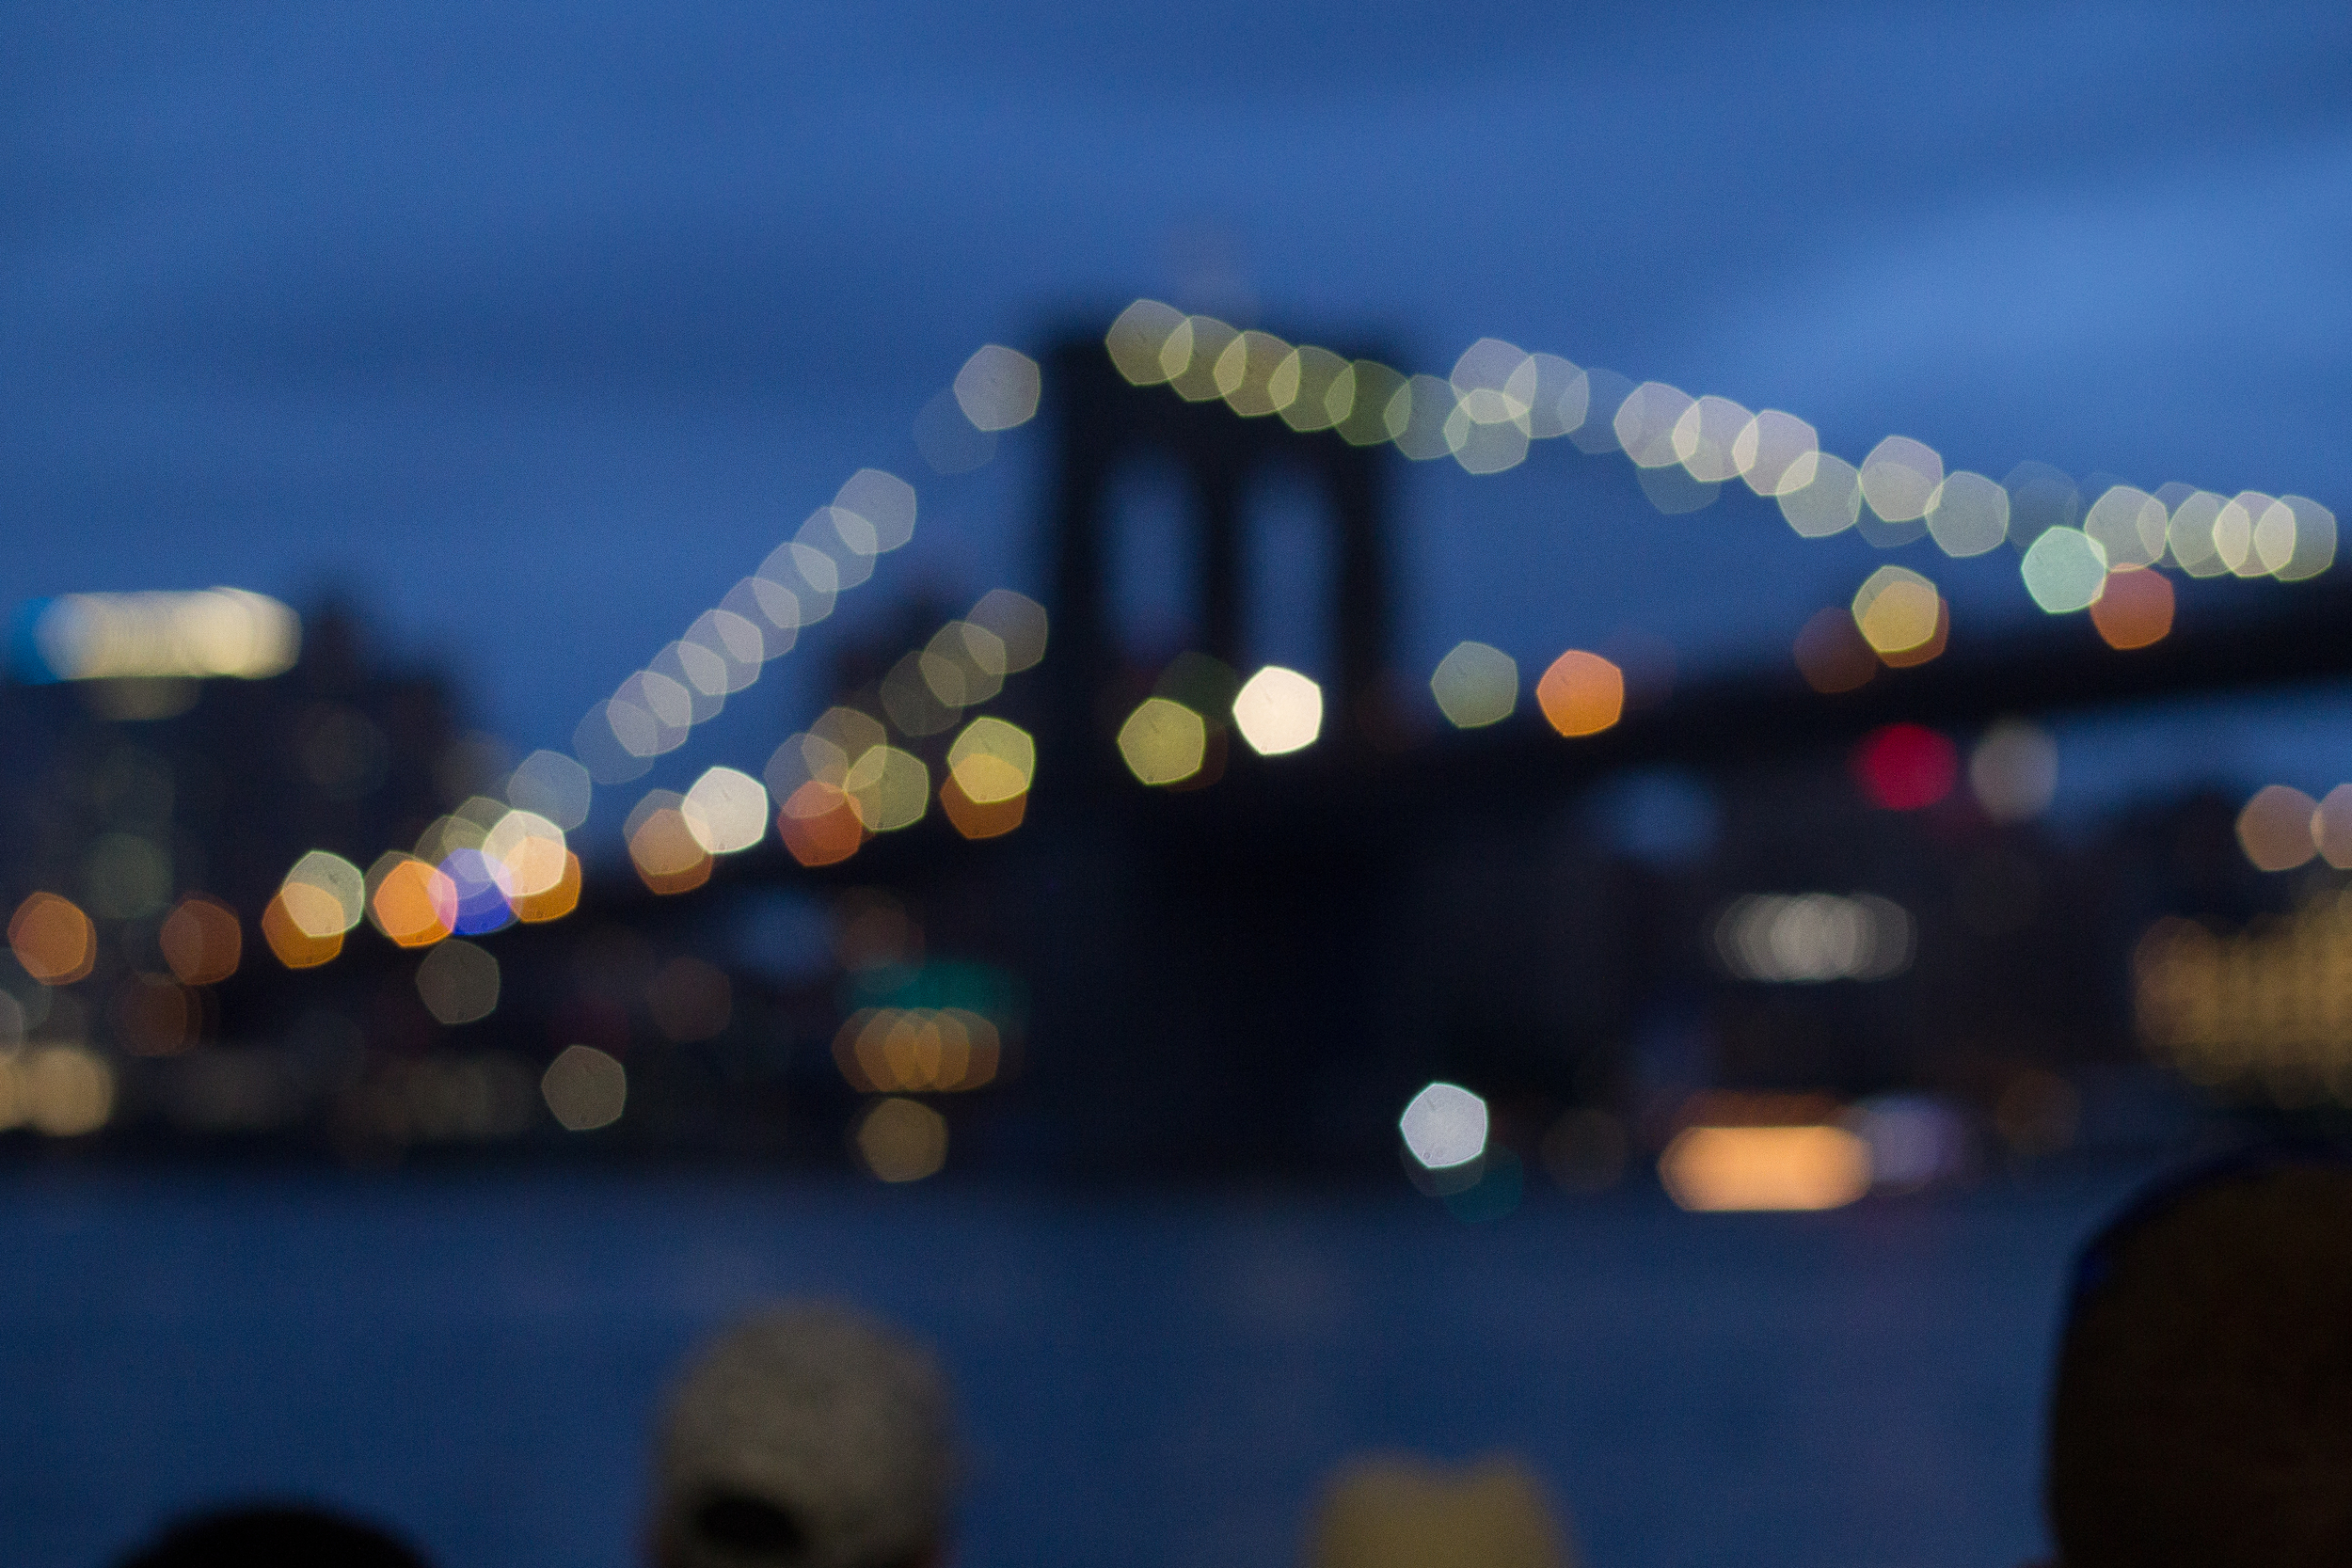 Bokeh Brooklyn Bridge